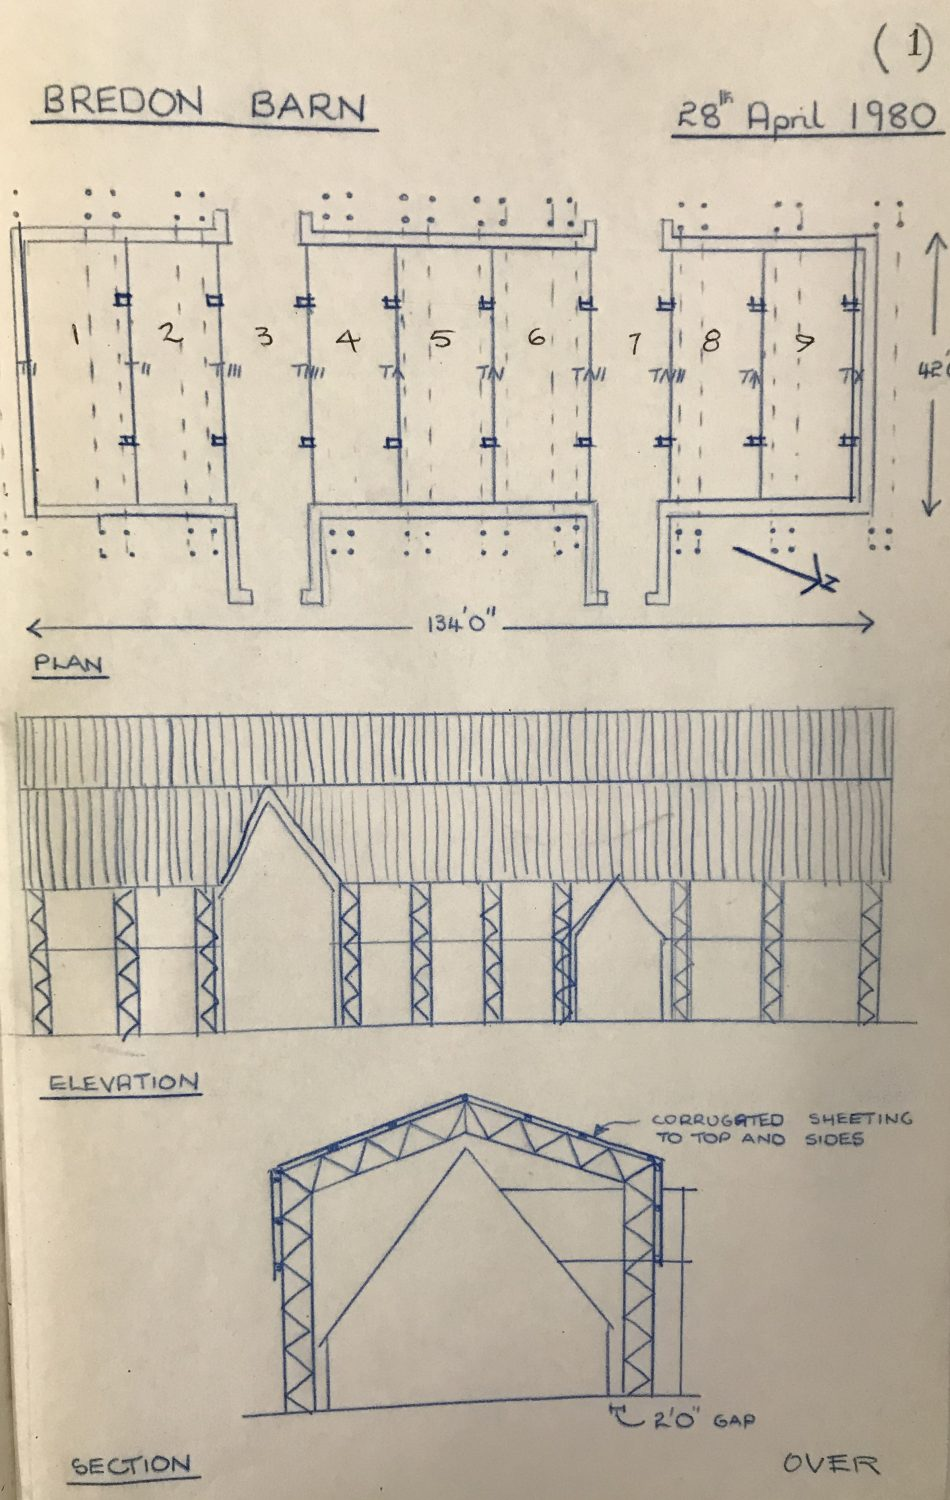 Pen drawings of the barn, and its 9 bays, from Freddie's project work book; entry dated 28th April 1980